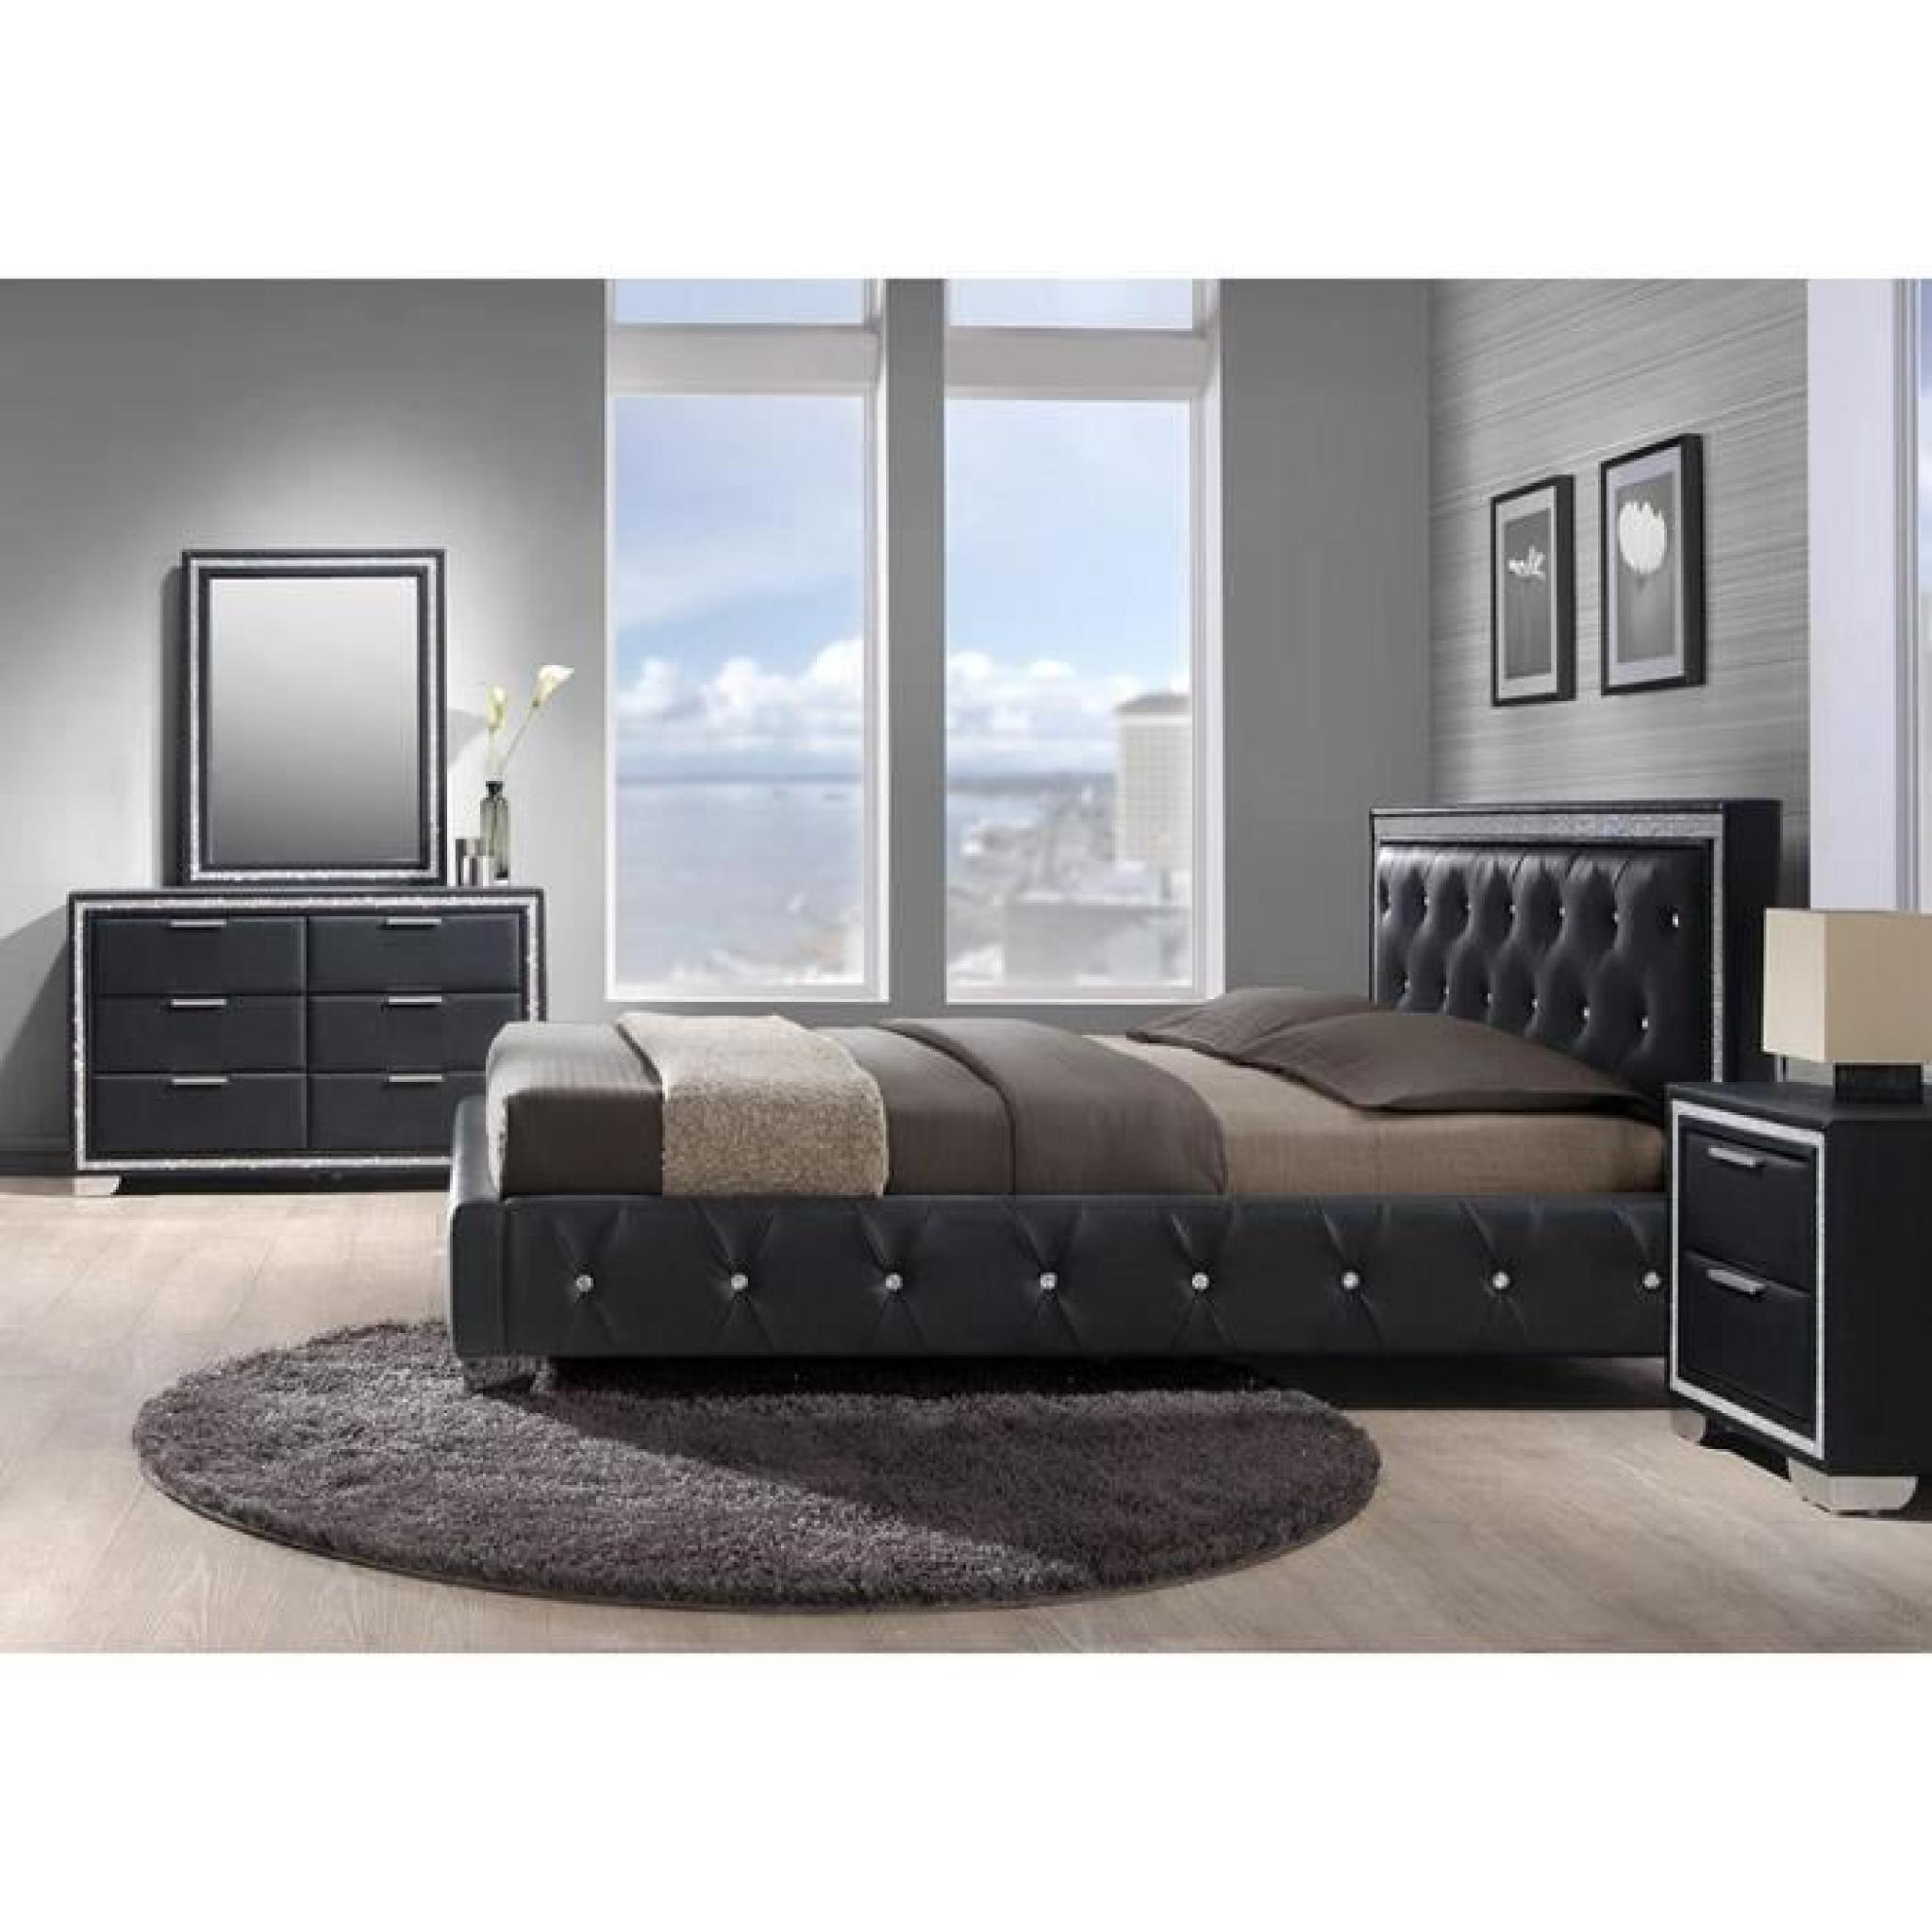 lit simili noir et strass avec t te de lit cladis 140 x. Black Bedroom Furniture Sets. Home Design Ideas